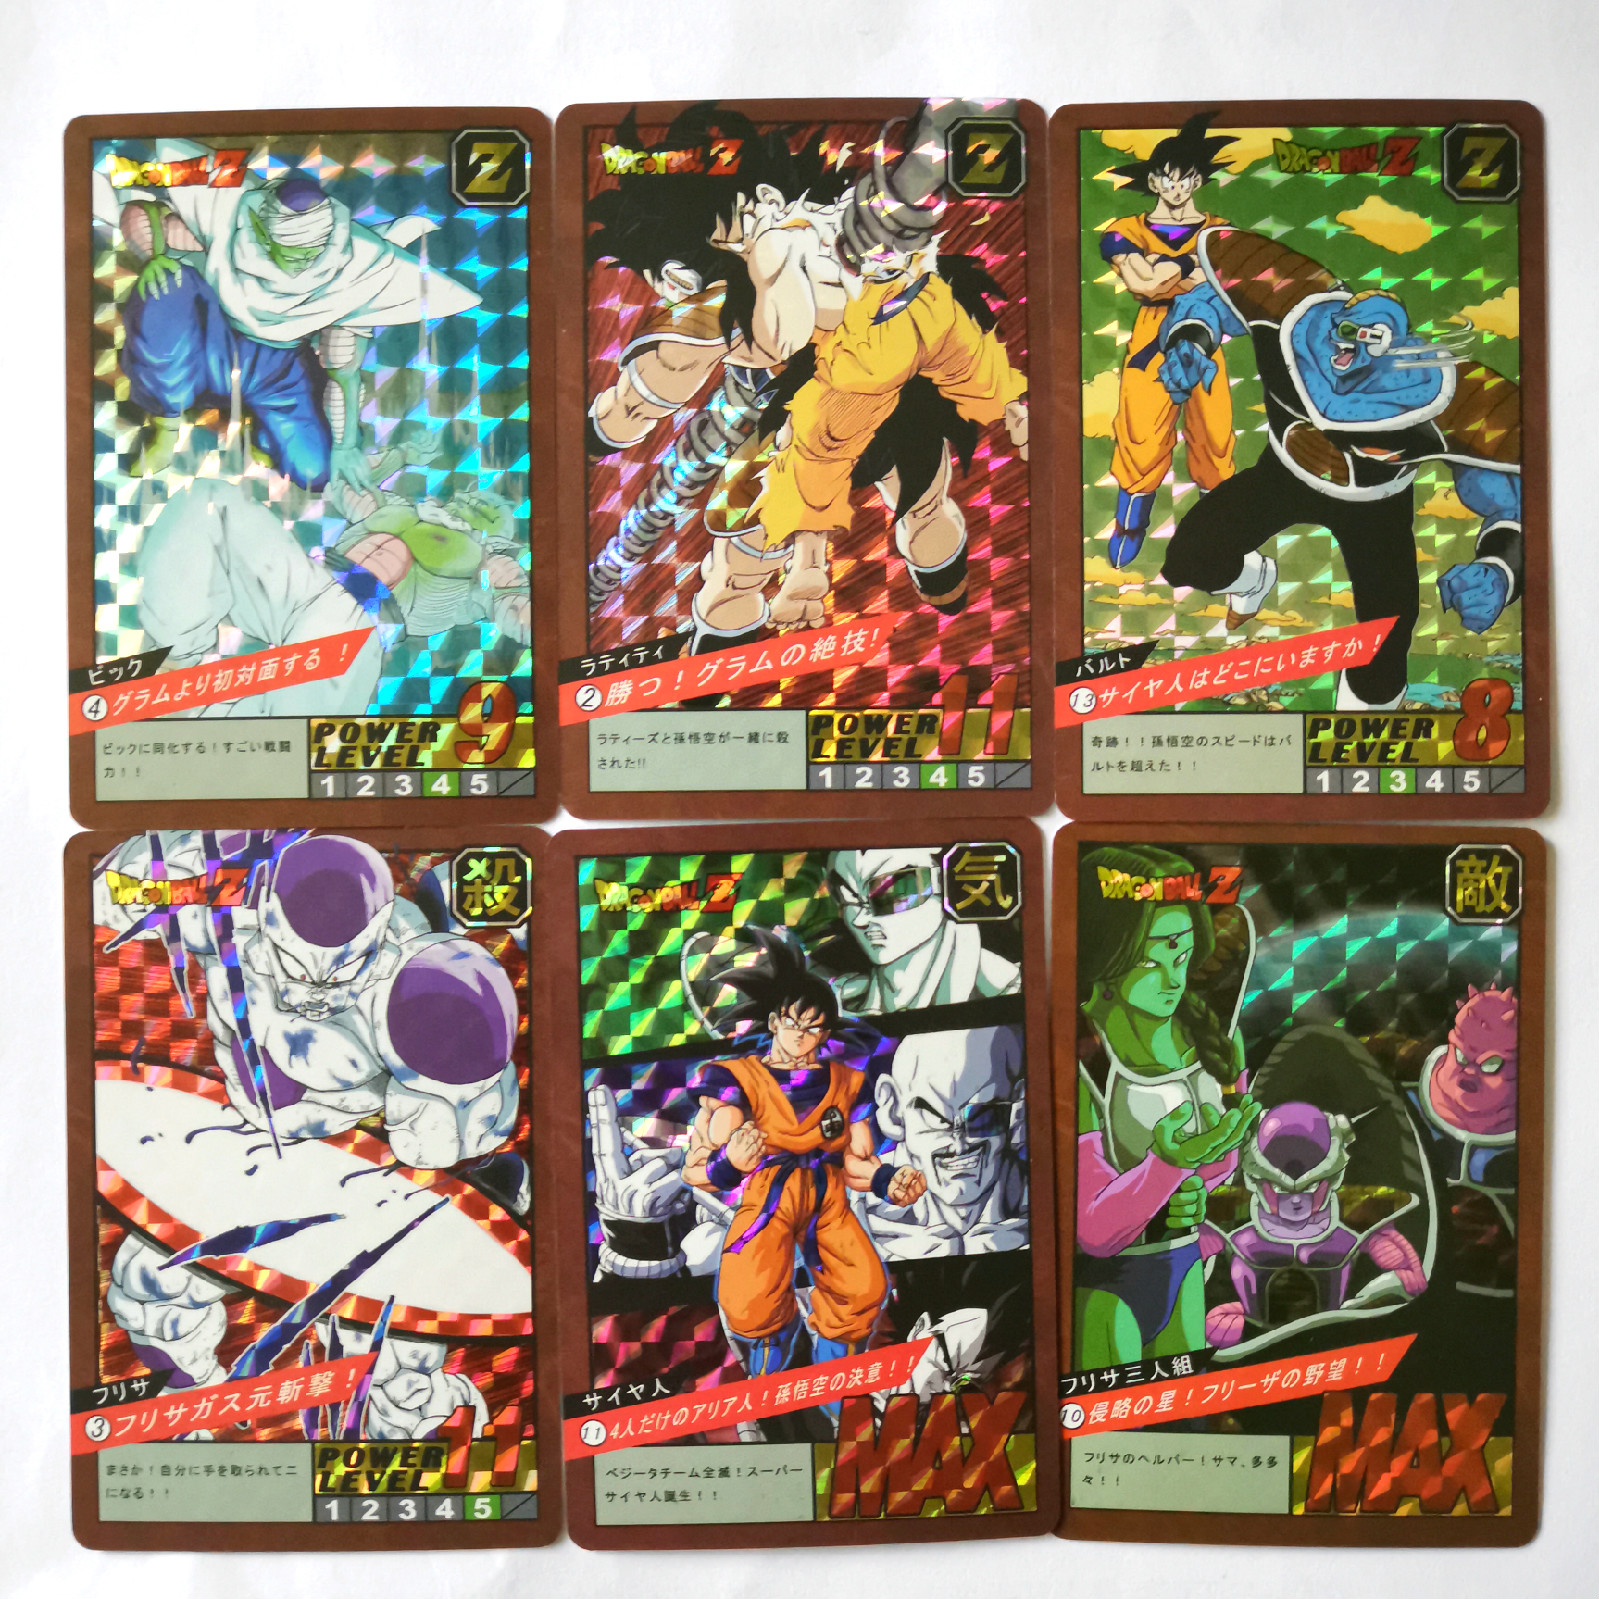 15pcs Super Dragon Ball Limited To 100 Sets Heroes Battle Card Ultra Instinct Goku Chichi Super Game Collection Anime Cards